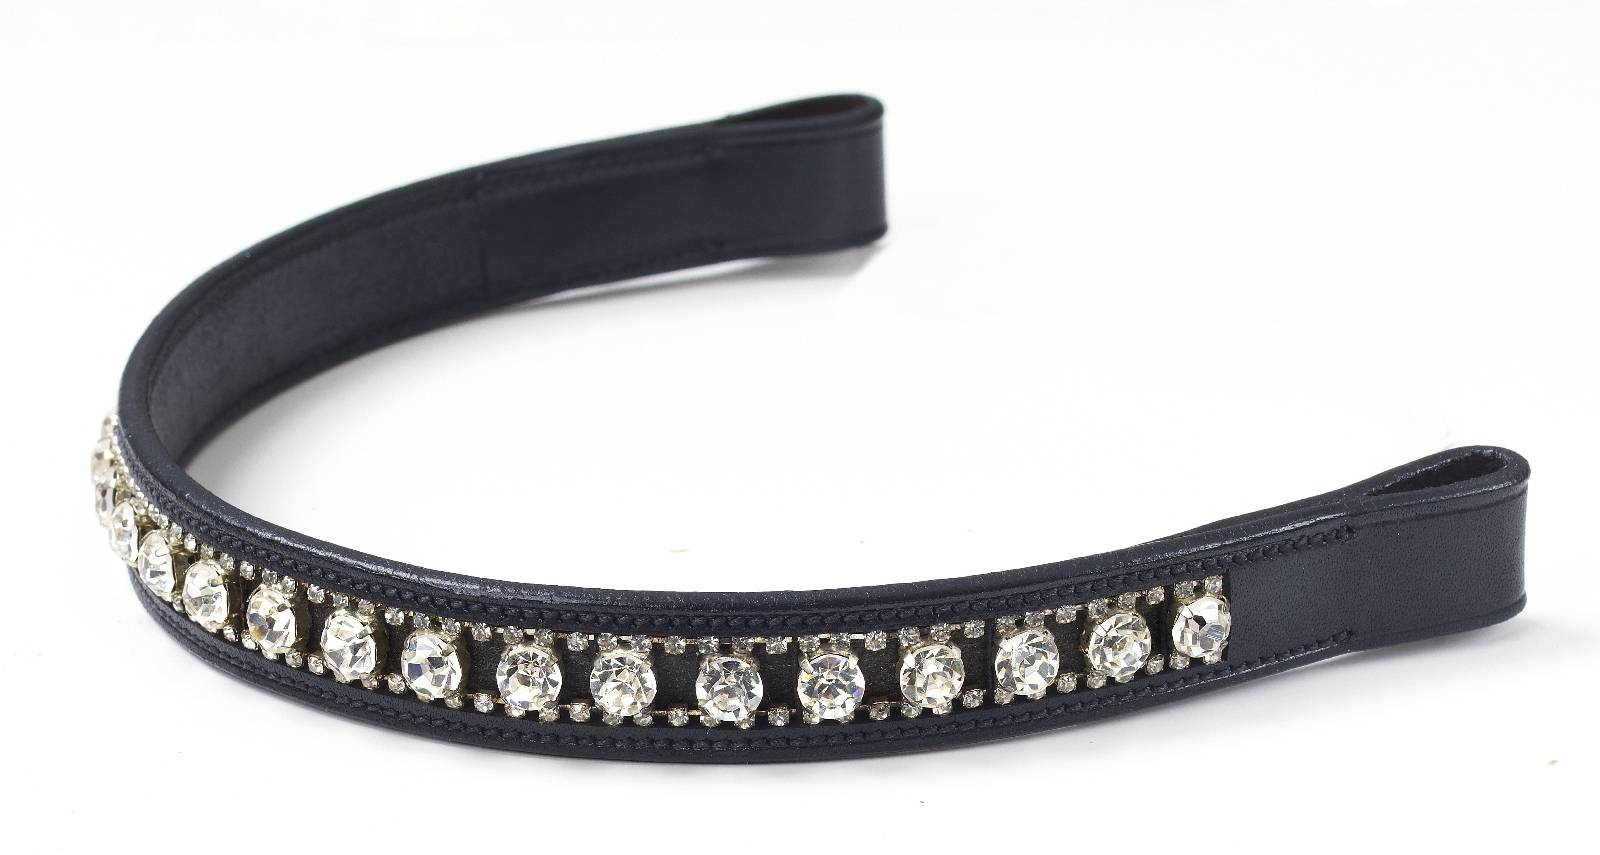 Ovation Regency Bling Browband